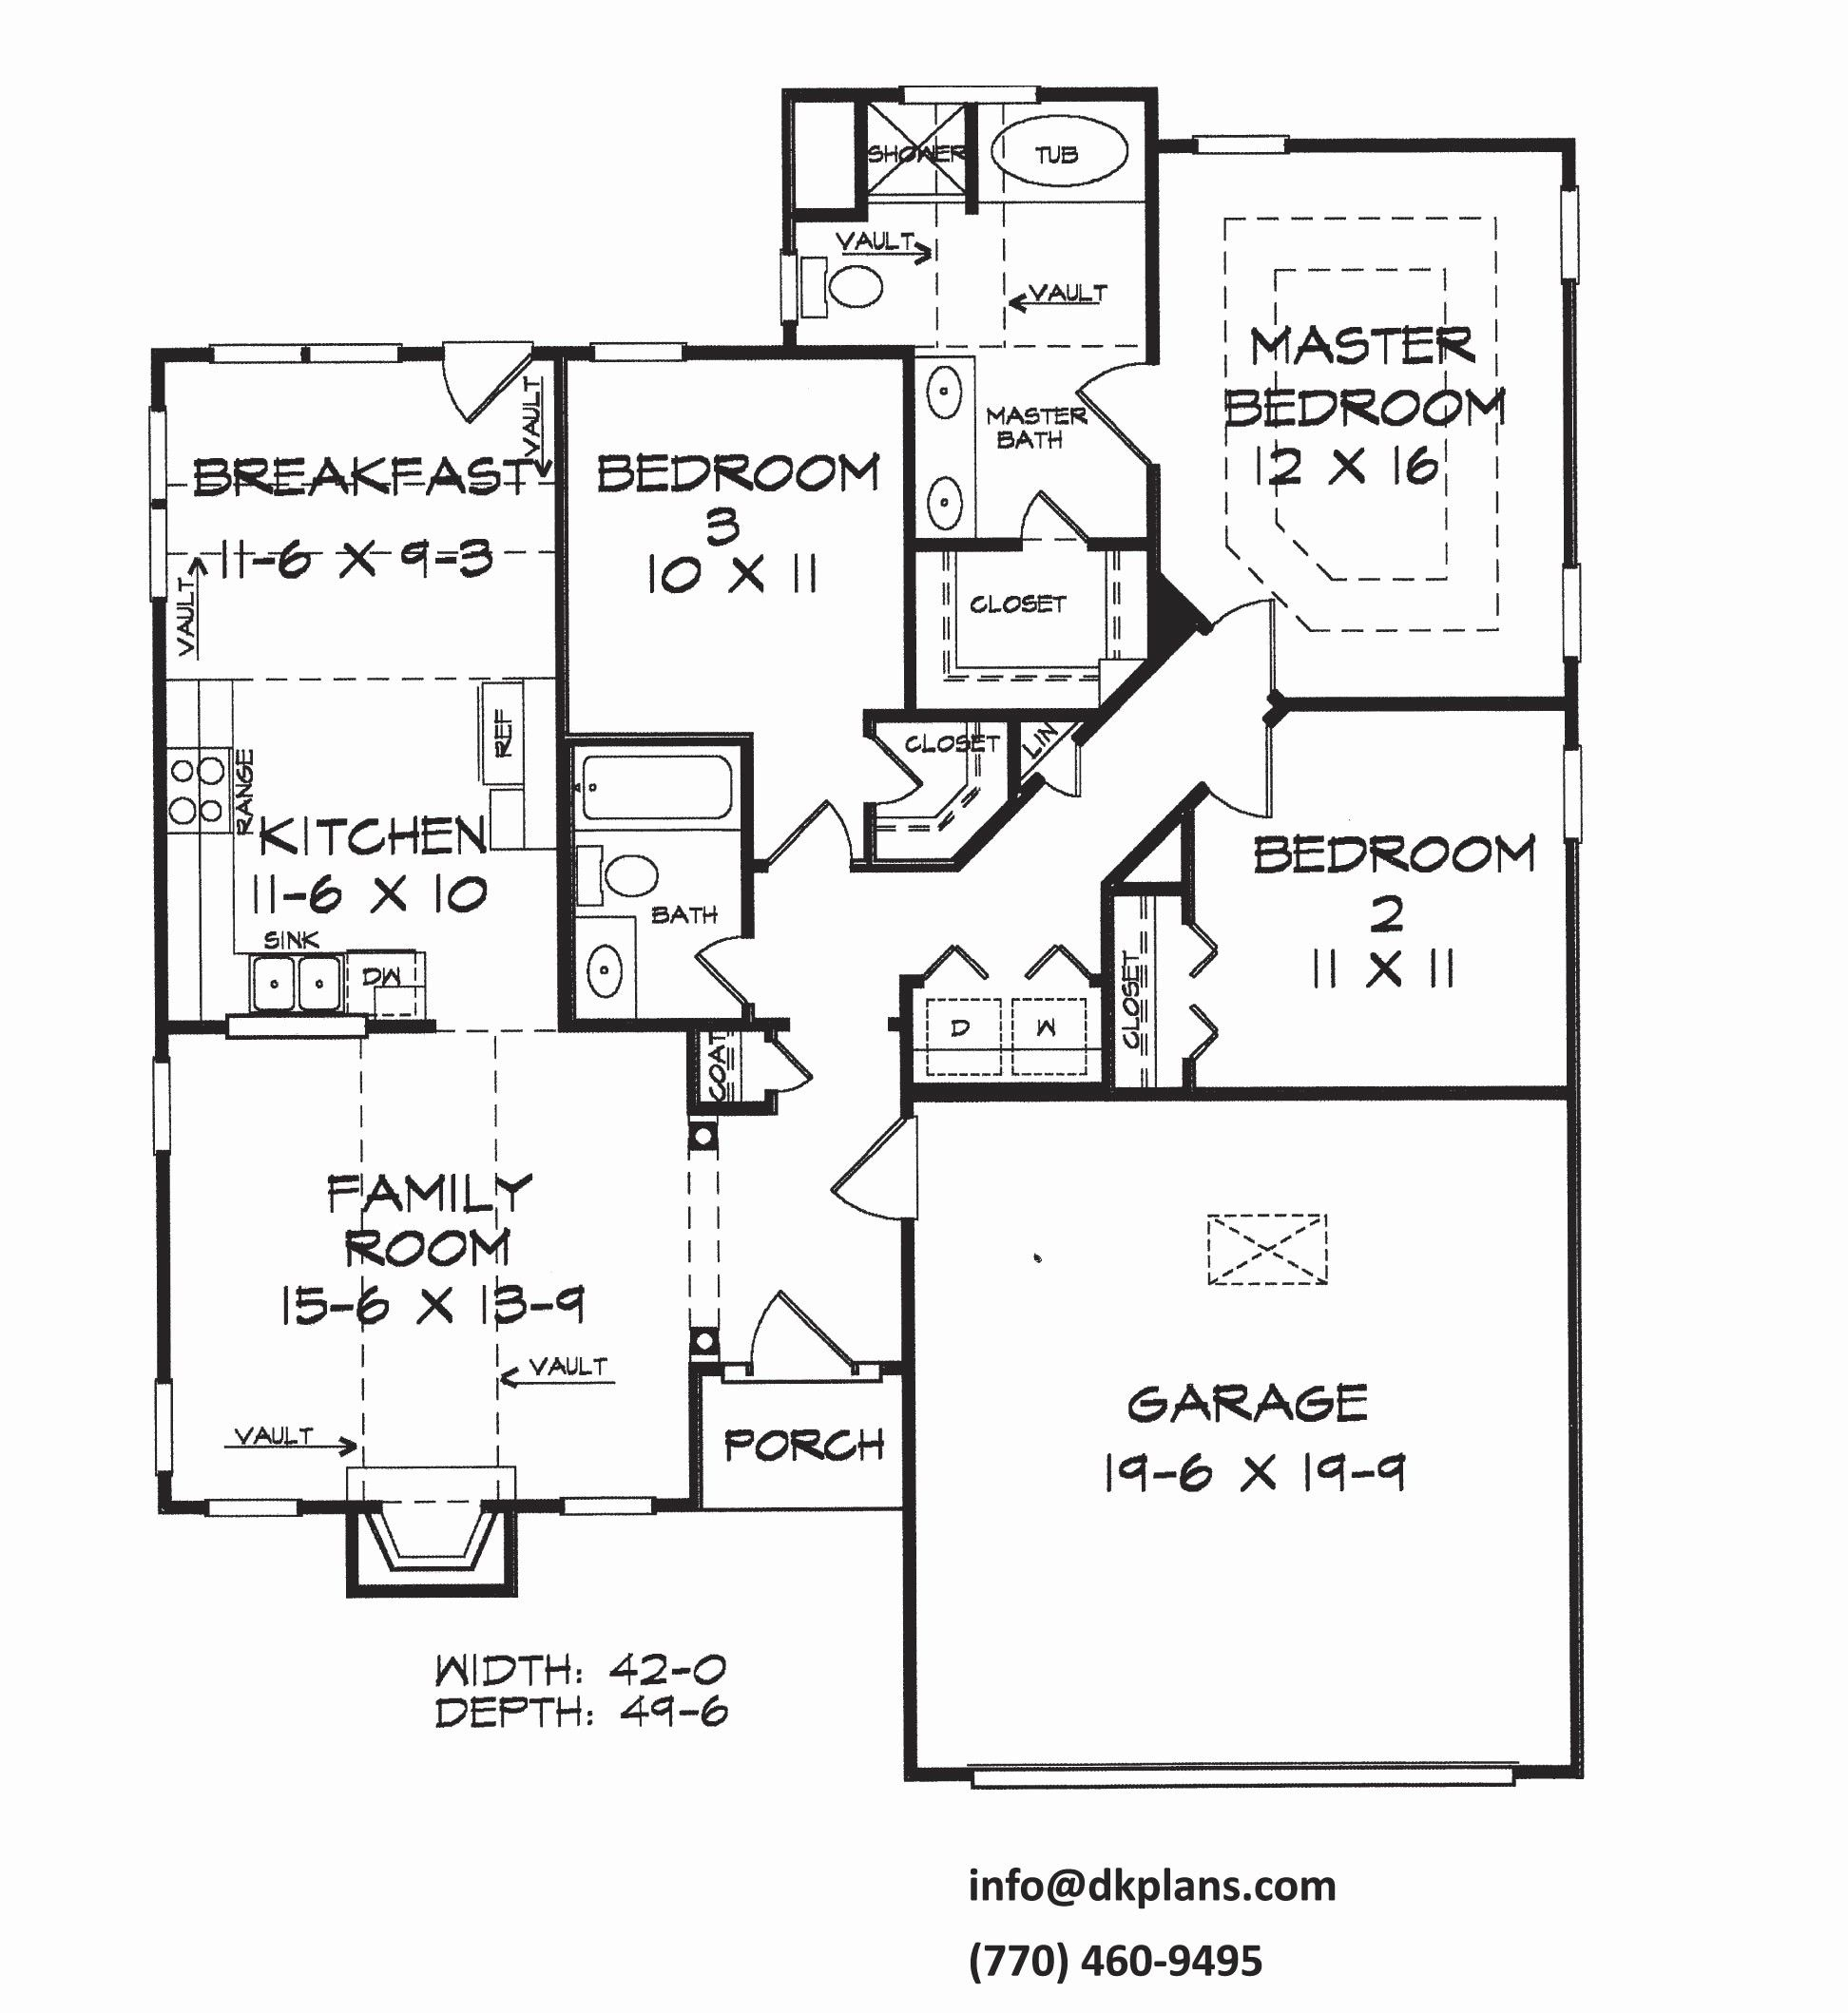 Draw House Plans Online Elegant Draw House Floor Plans Line With Draw House Plans Online Floor Plan Design Master Bedroom Floor Plan Ideas Free House Plans